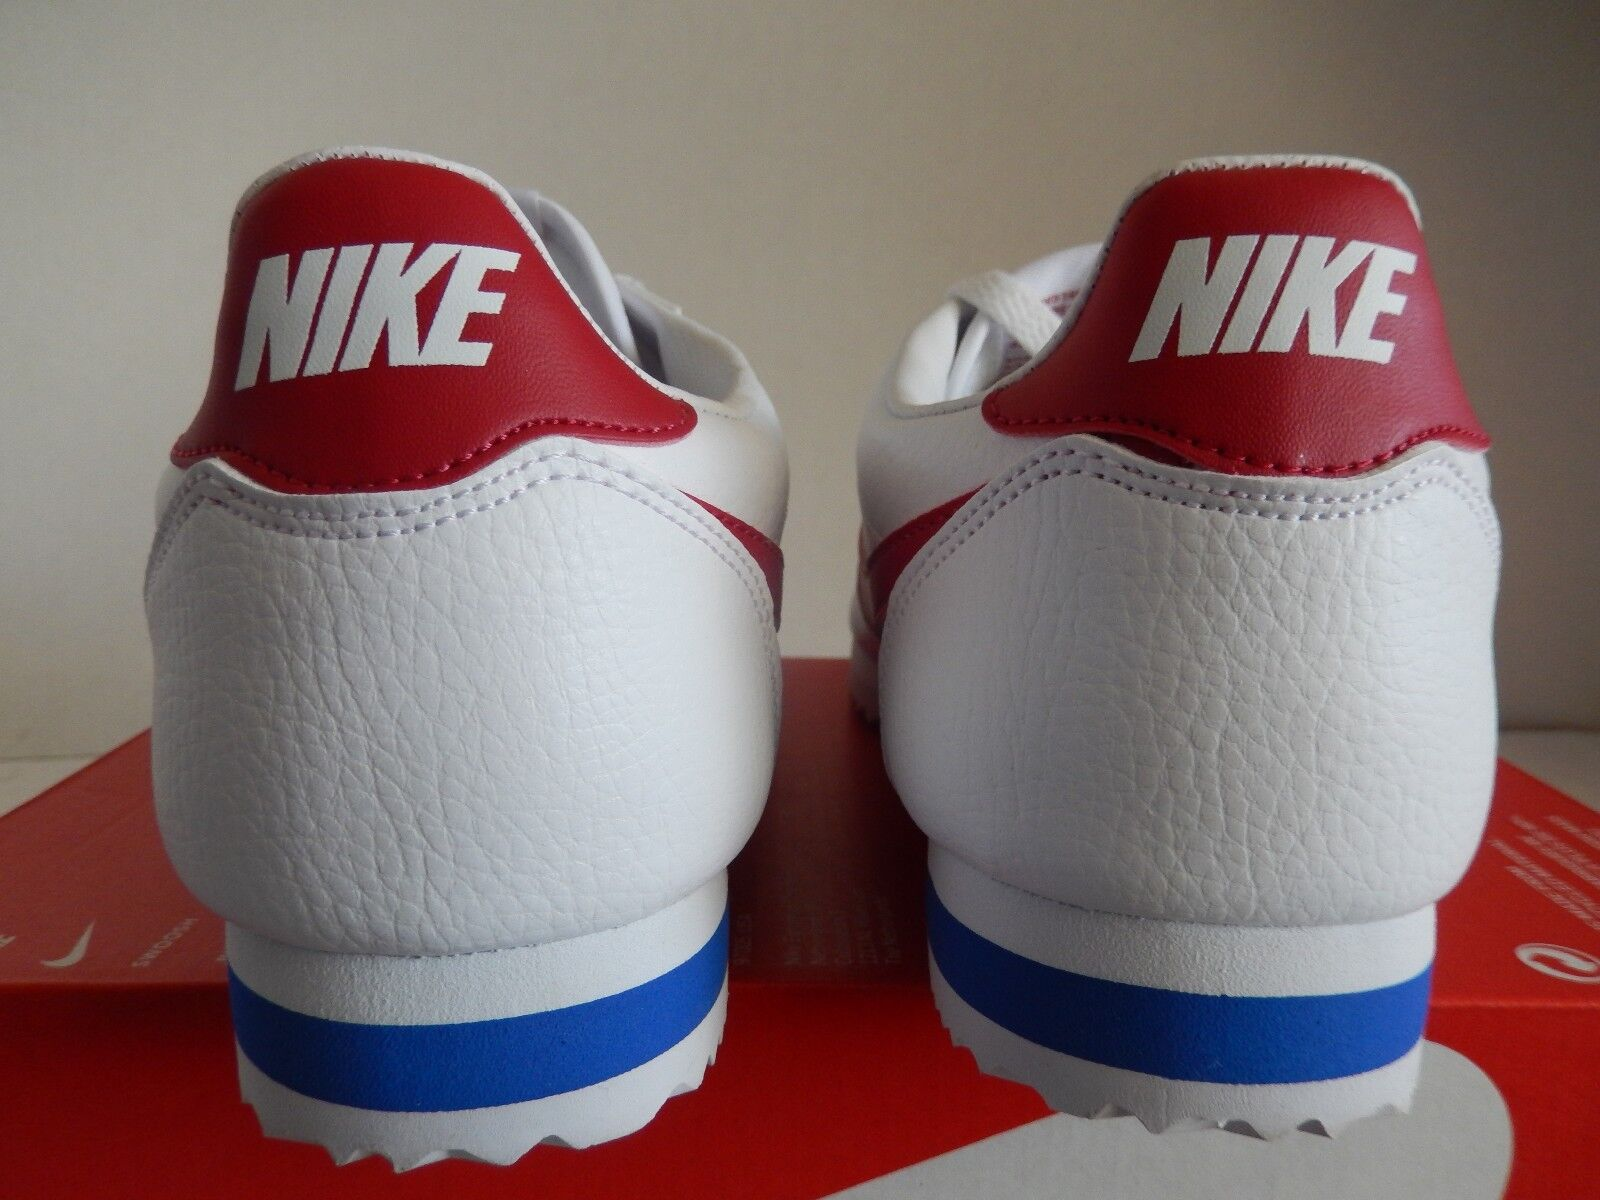 NIKE NIKE NIKE CLASSIC CORTEZ LEATHER